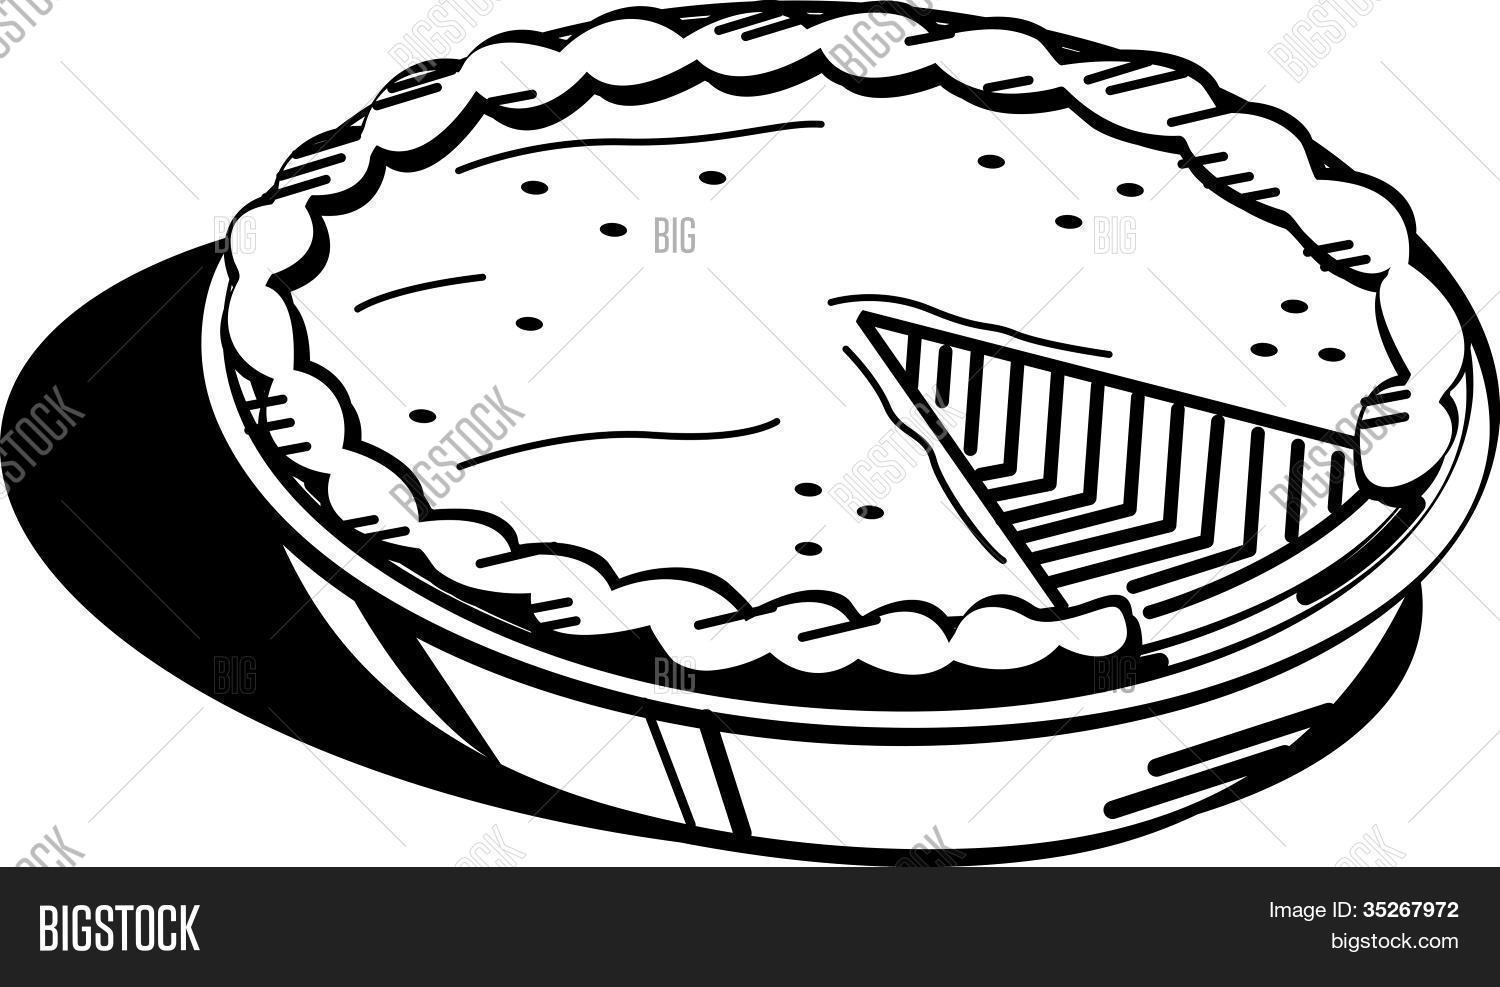 Pie Coloring Page at GetDrawings.com | Free for personal use Pie ...